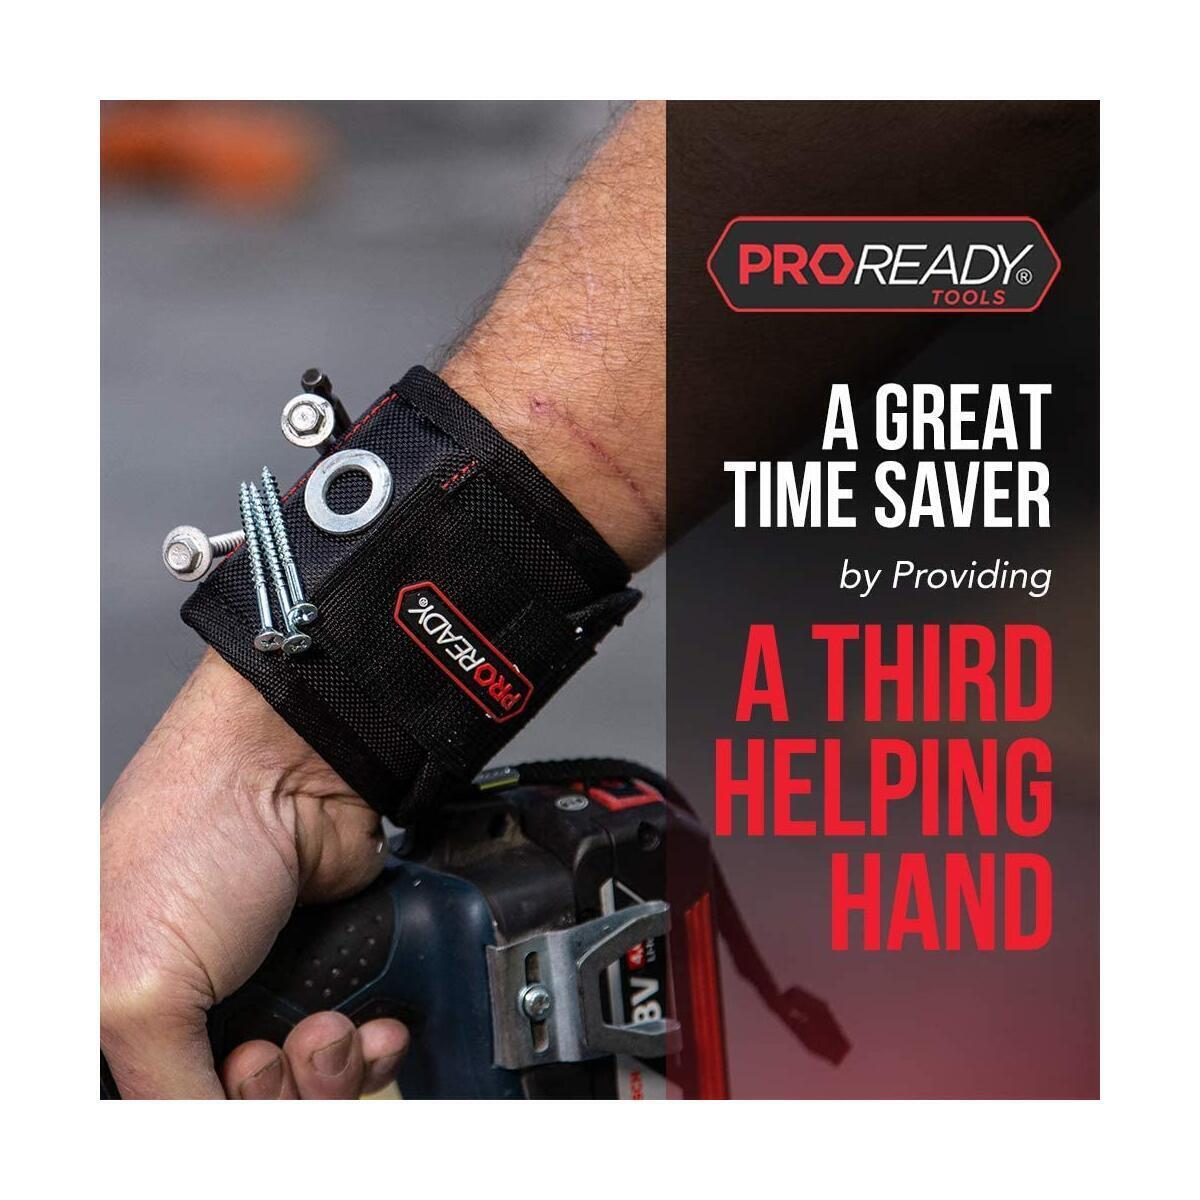 PROREADY Magnetic Wristband for Holding Screws - Wrist Band with Super Strong Magnets - Heavy Duty Adjustable hook and loop fastener - Wrist Magnet Holder For Nails and Drill Bits